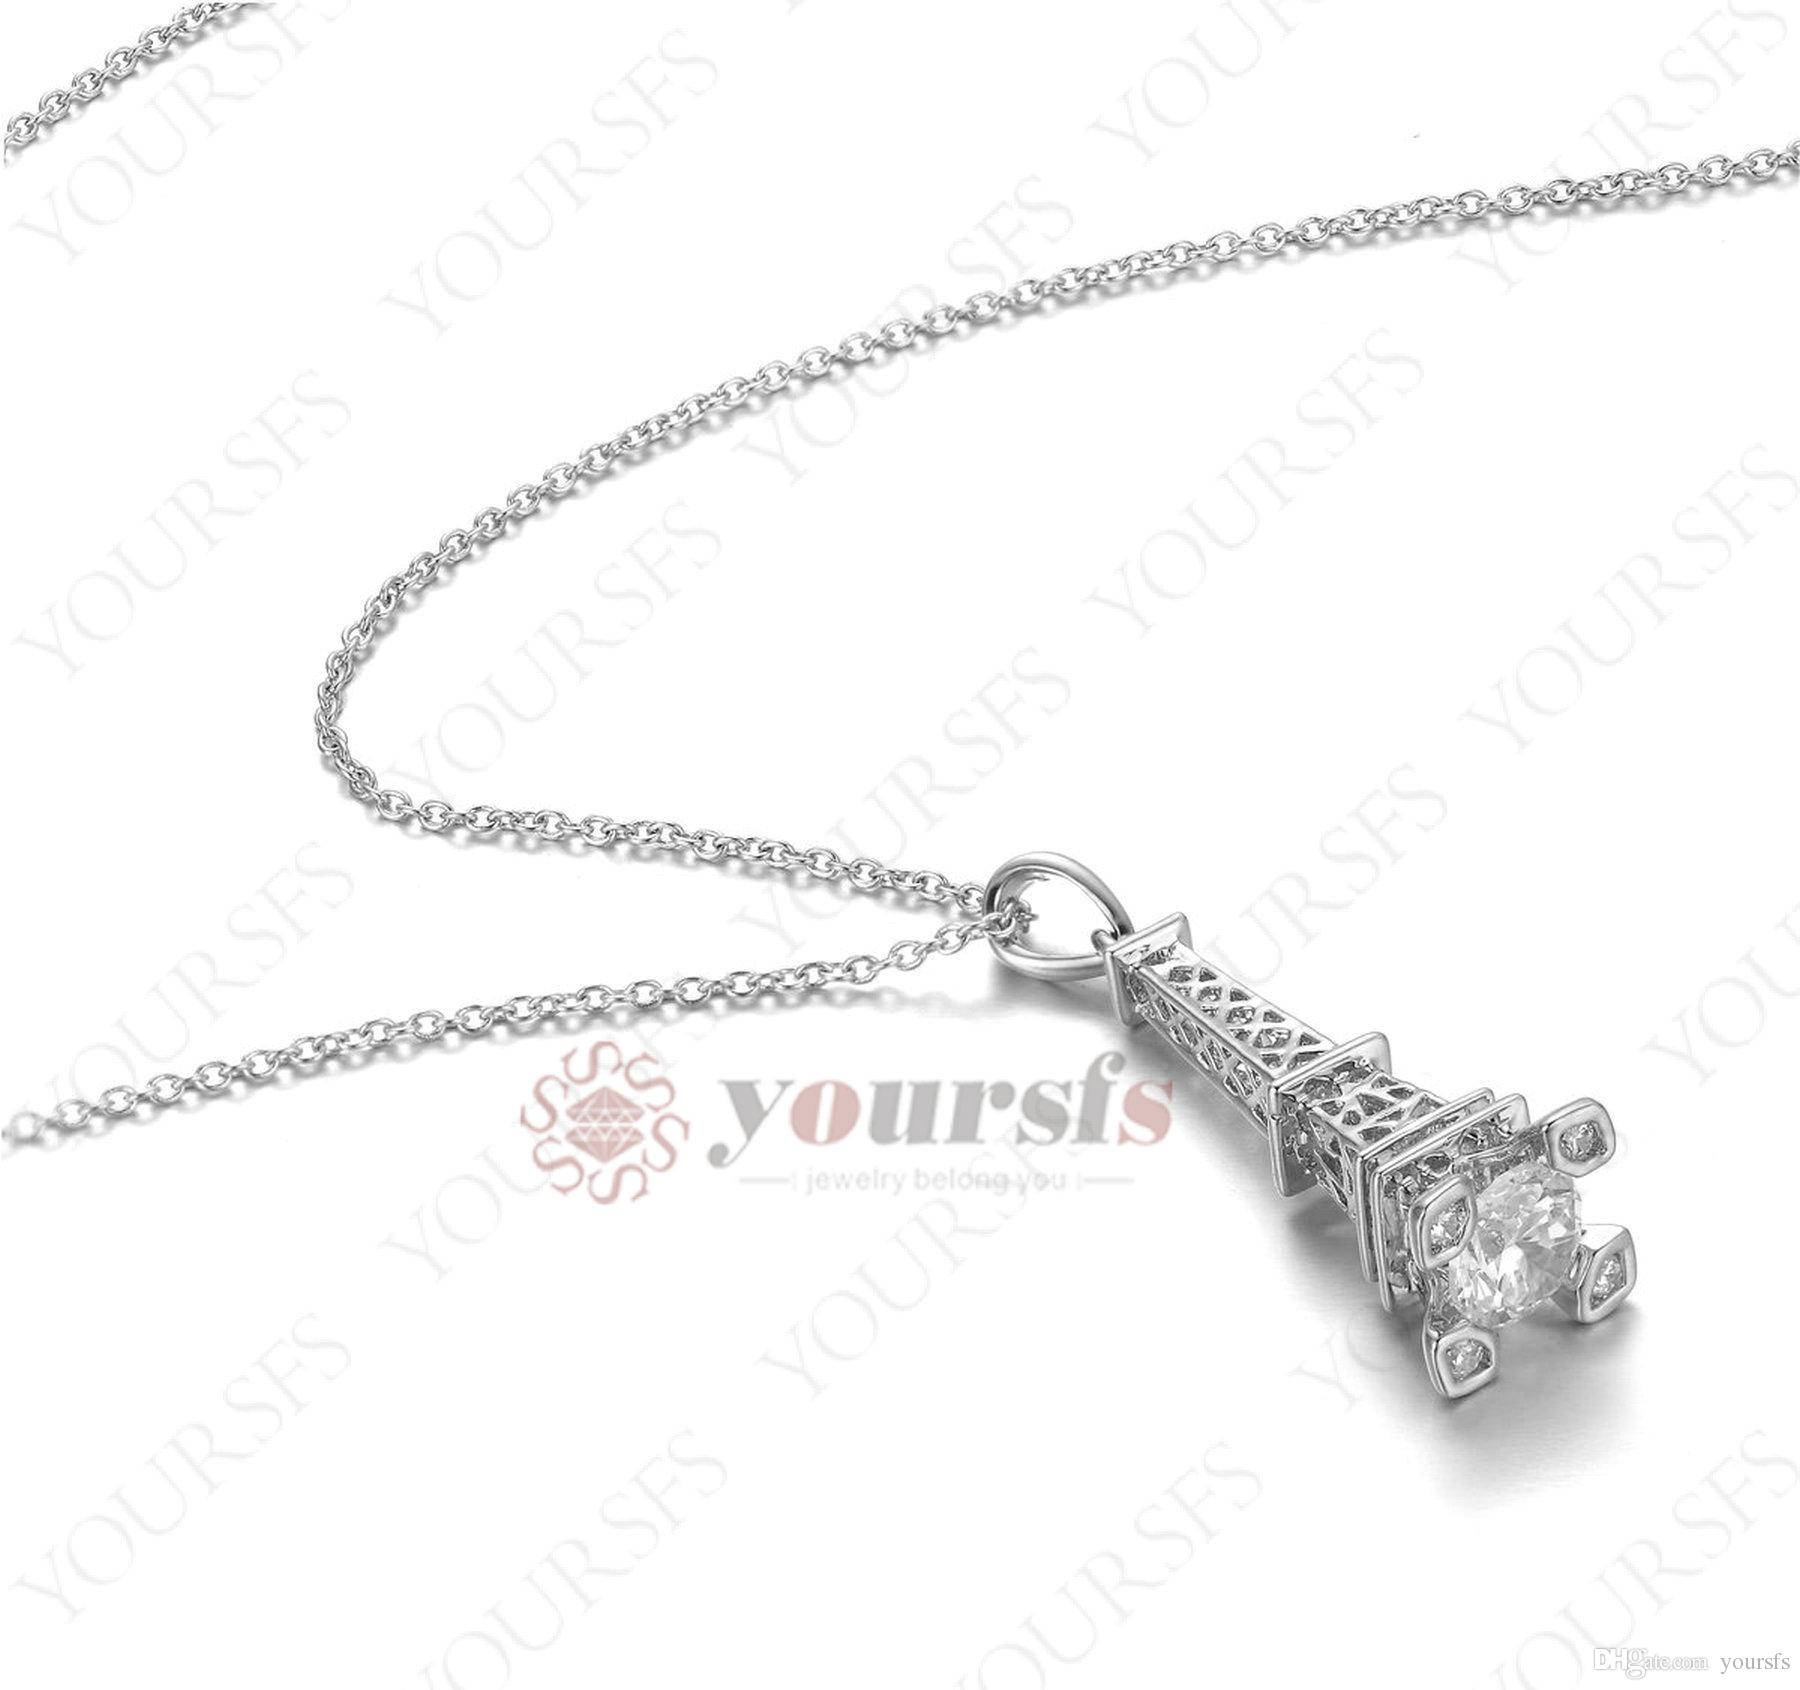 Wholesale yoursfs art works eiffel tower pendant necklace filling wholesale yoursfs art works eiffel tower pendant necklace filling clear austrian crystal 18k white gold and rose gold plated wedding for women jewelry rose aloadofball Image collections